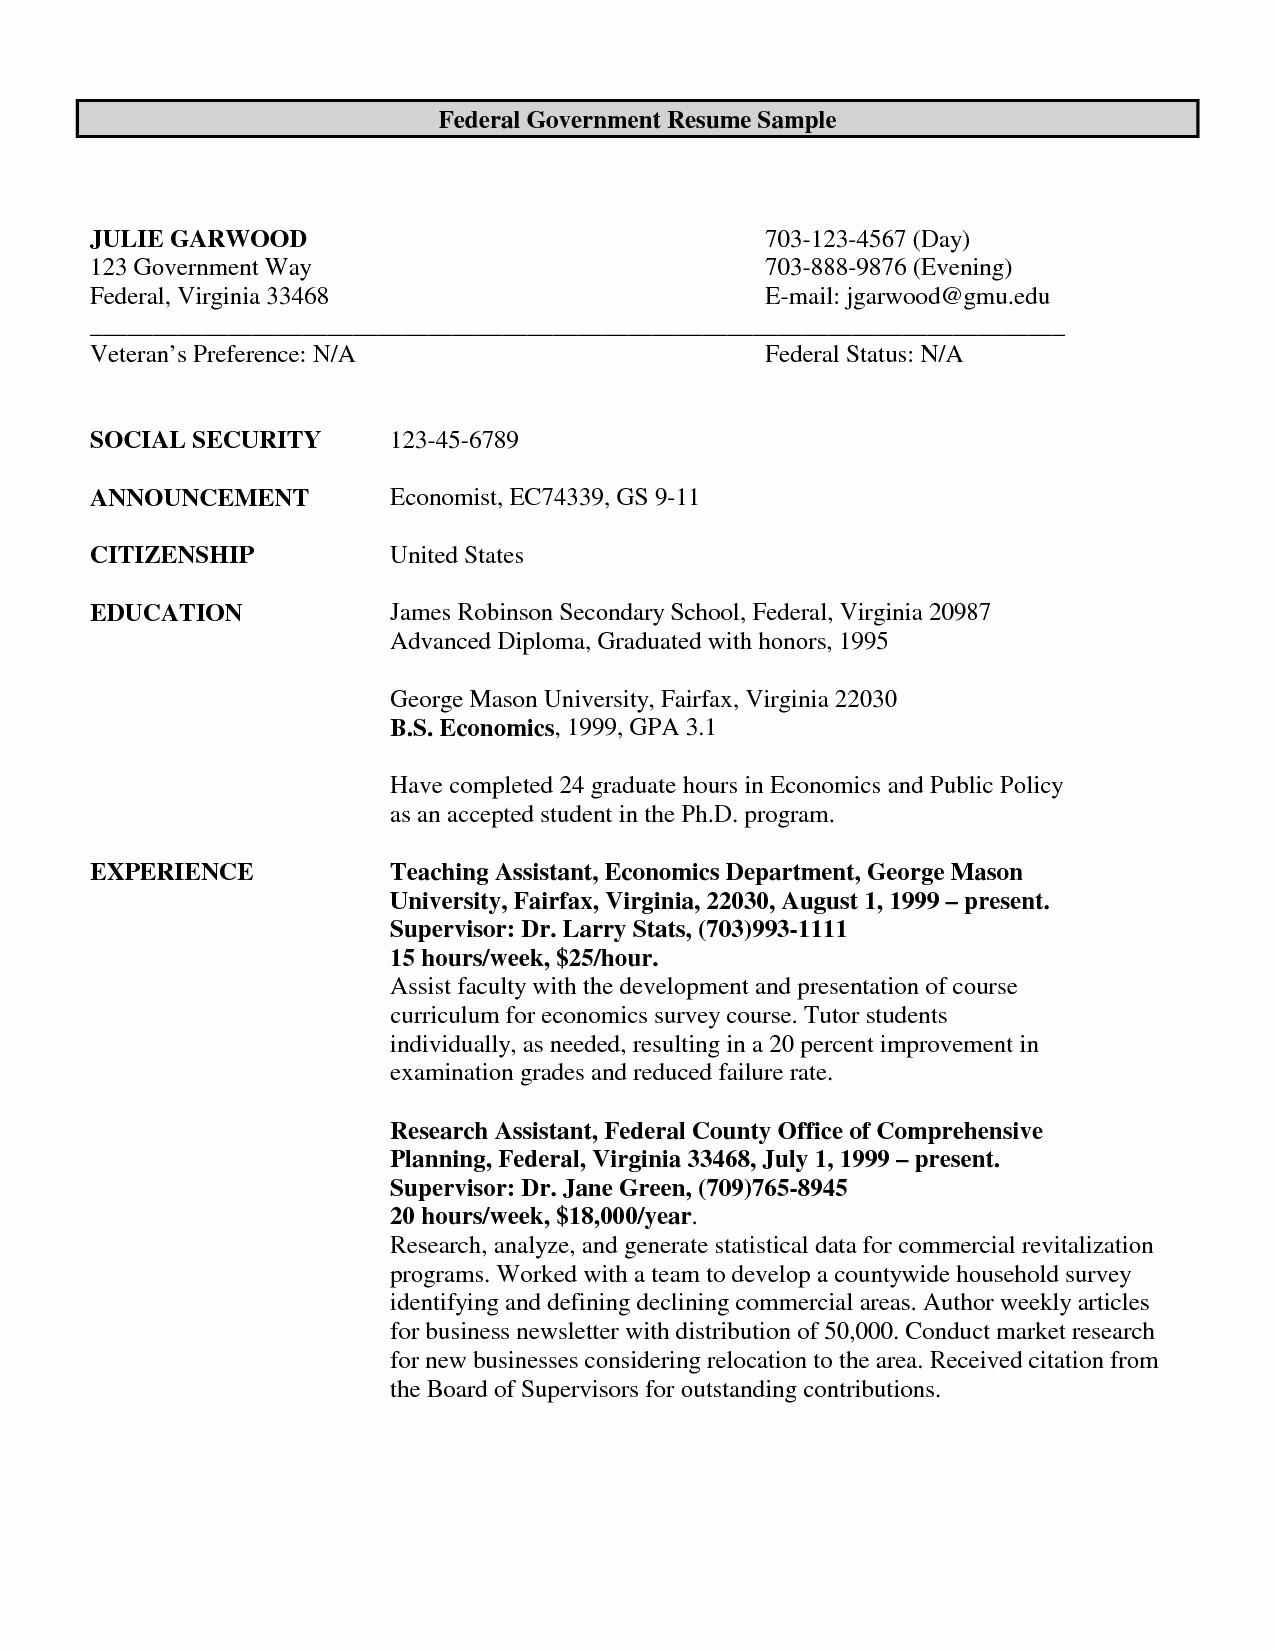 Resume for Government Job - Resume format for Freshers Free Download Latest Fresh Resume Samples